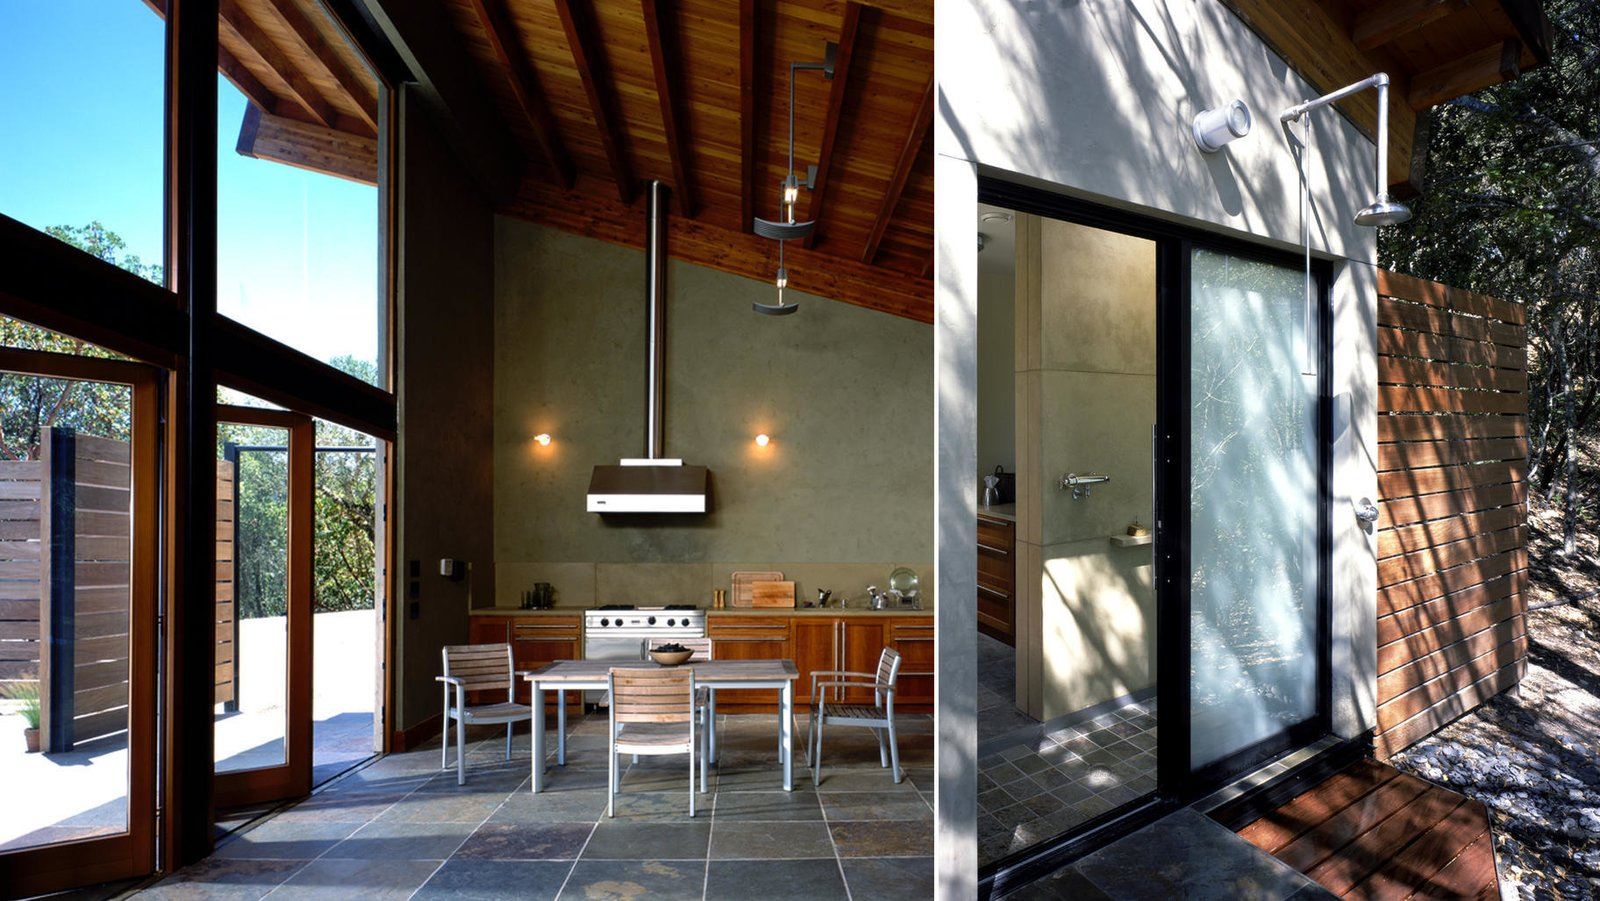 #poolhouse #calistoga #interior #exterior #kitchen #outdoorshower #smallspaces #cantileveredroof #cantilevered #roof